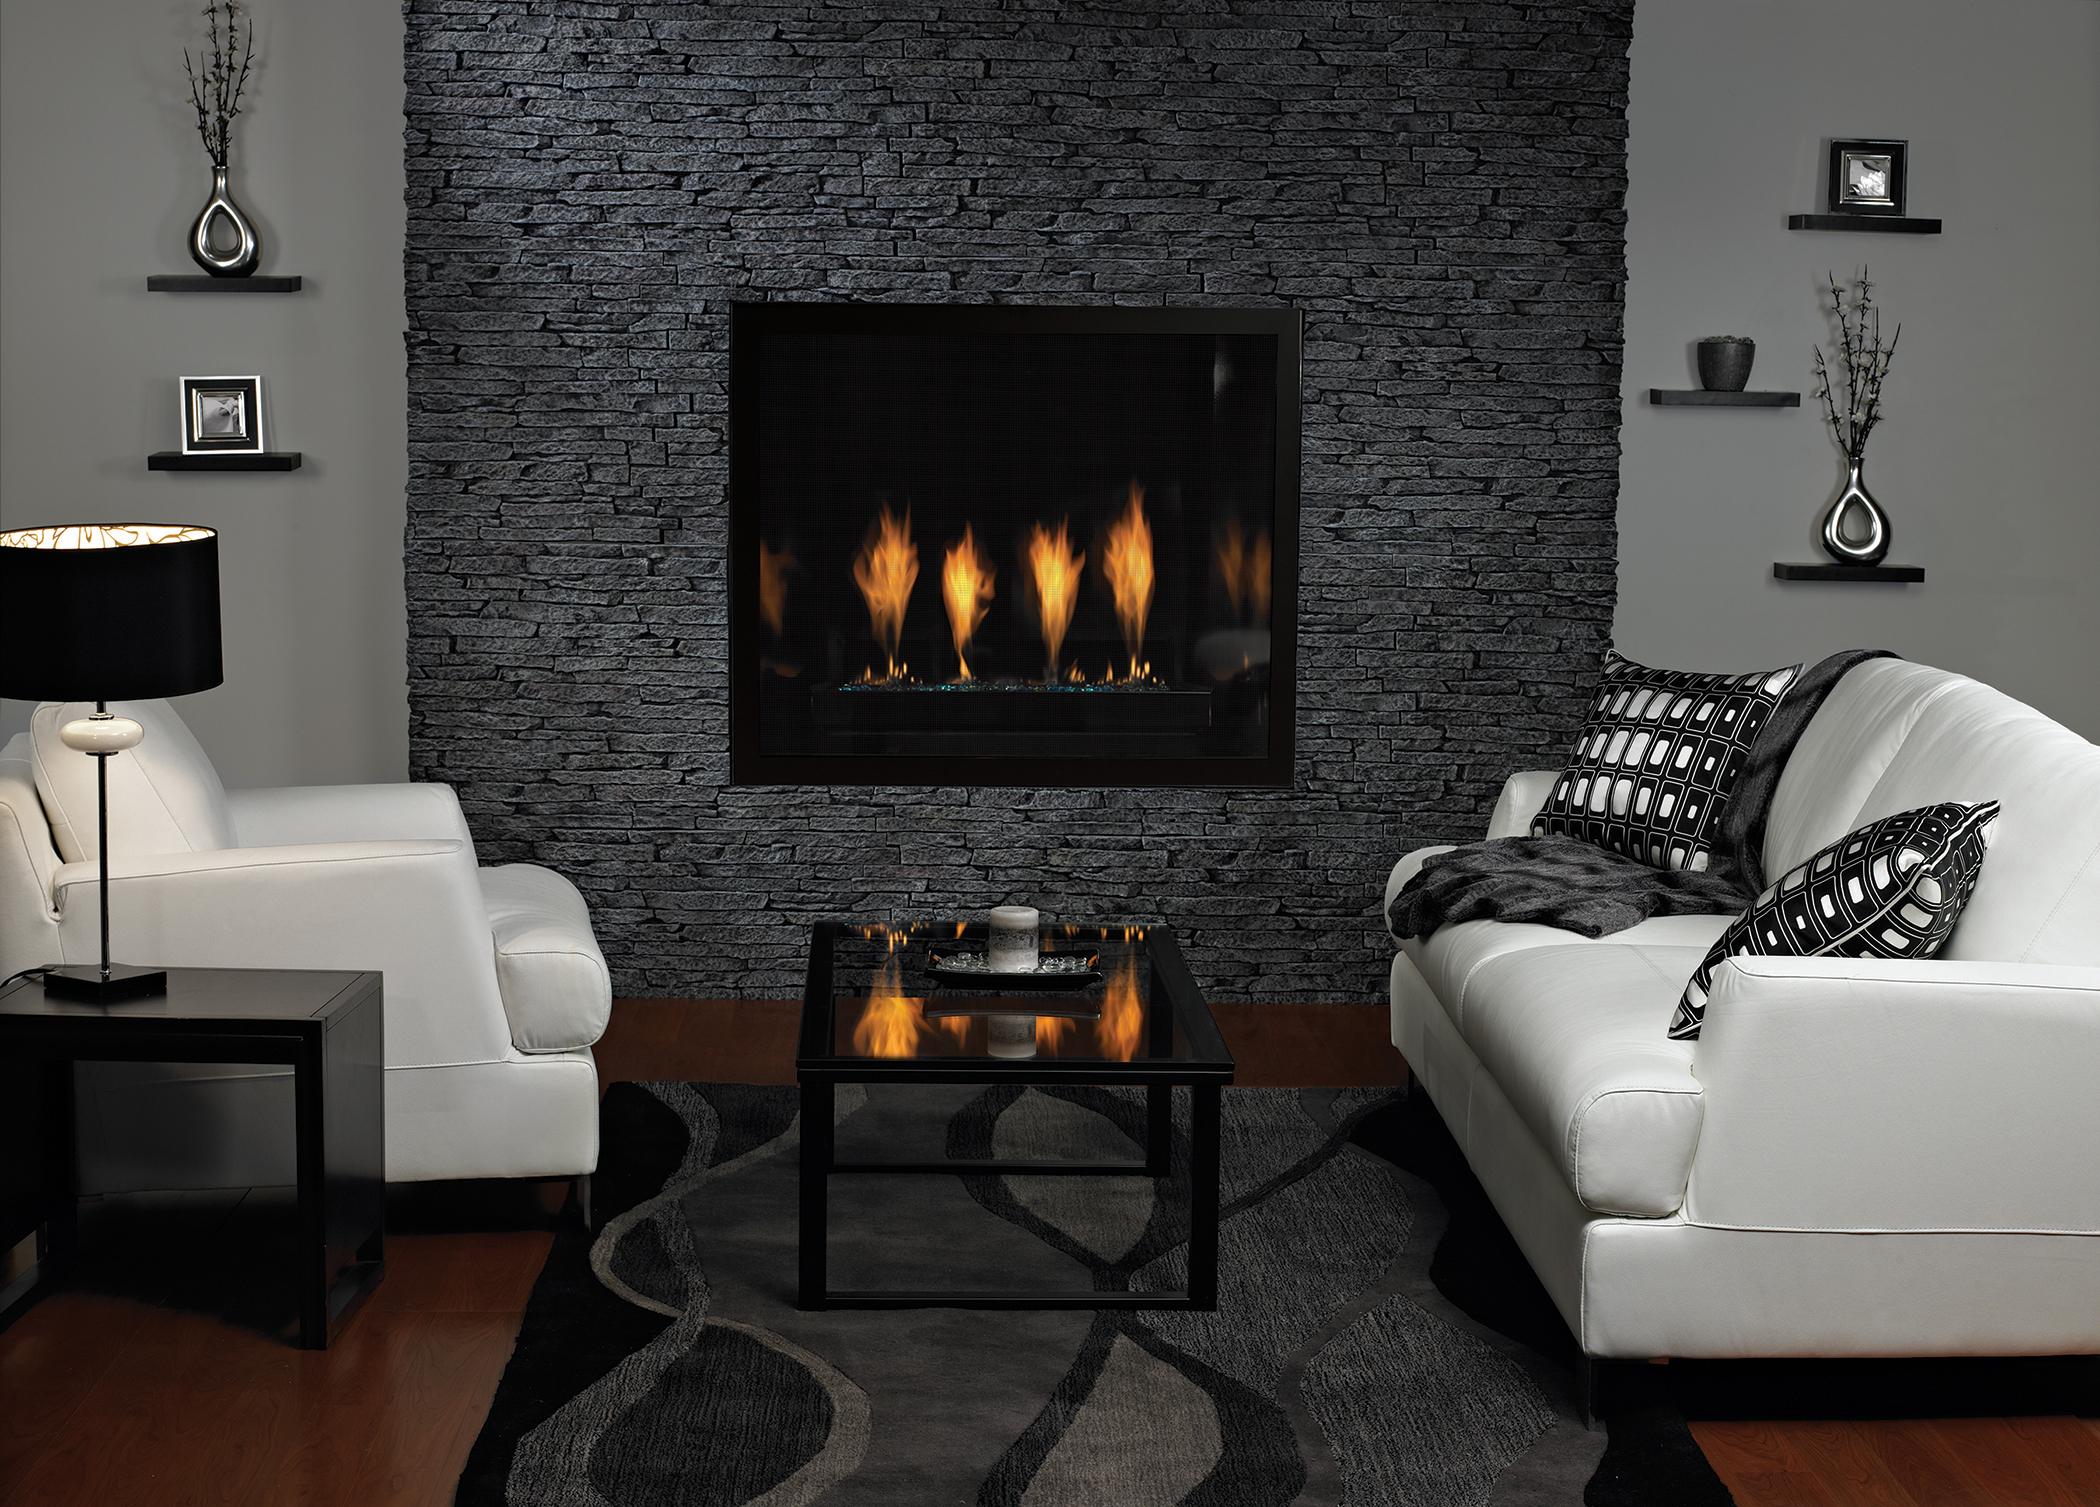 options comfort end west chateau empire comforter n accessories wscreen stoves fire fireplace systems products brick